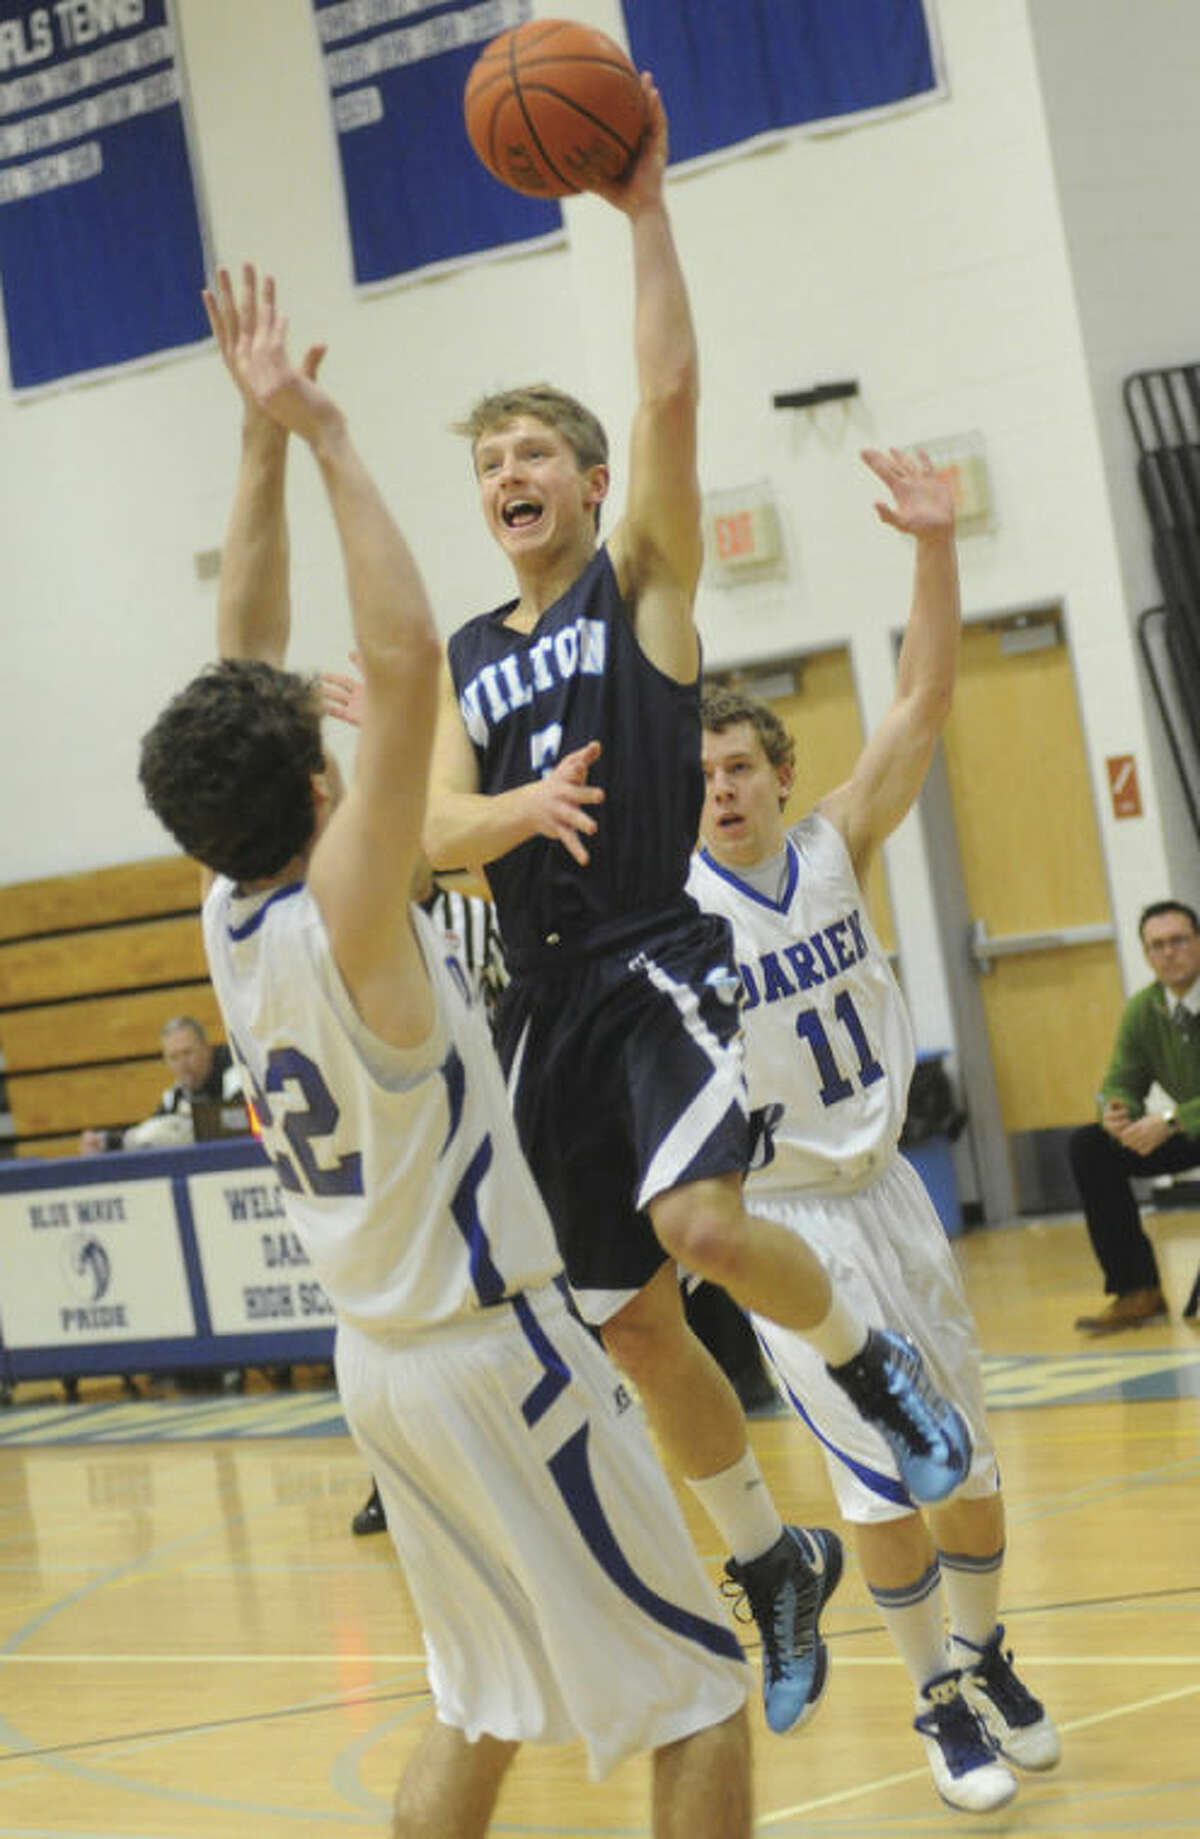 Hour photo/Matthew Vinci An airborne Max Maudsley of Wilton looks to pass over Henry Baldwin of Darien, left, during Monday's game.